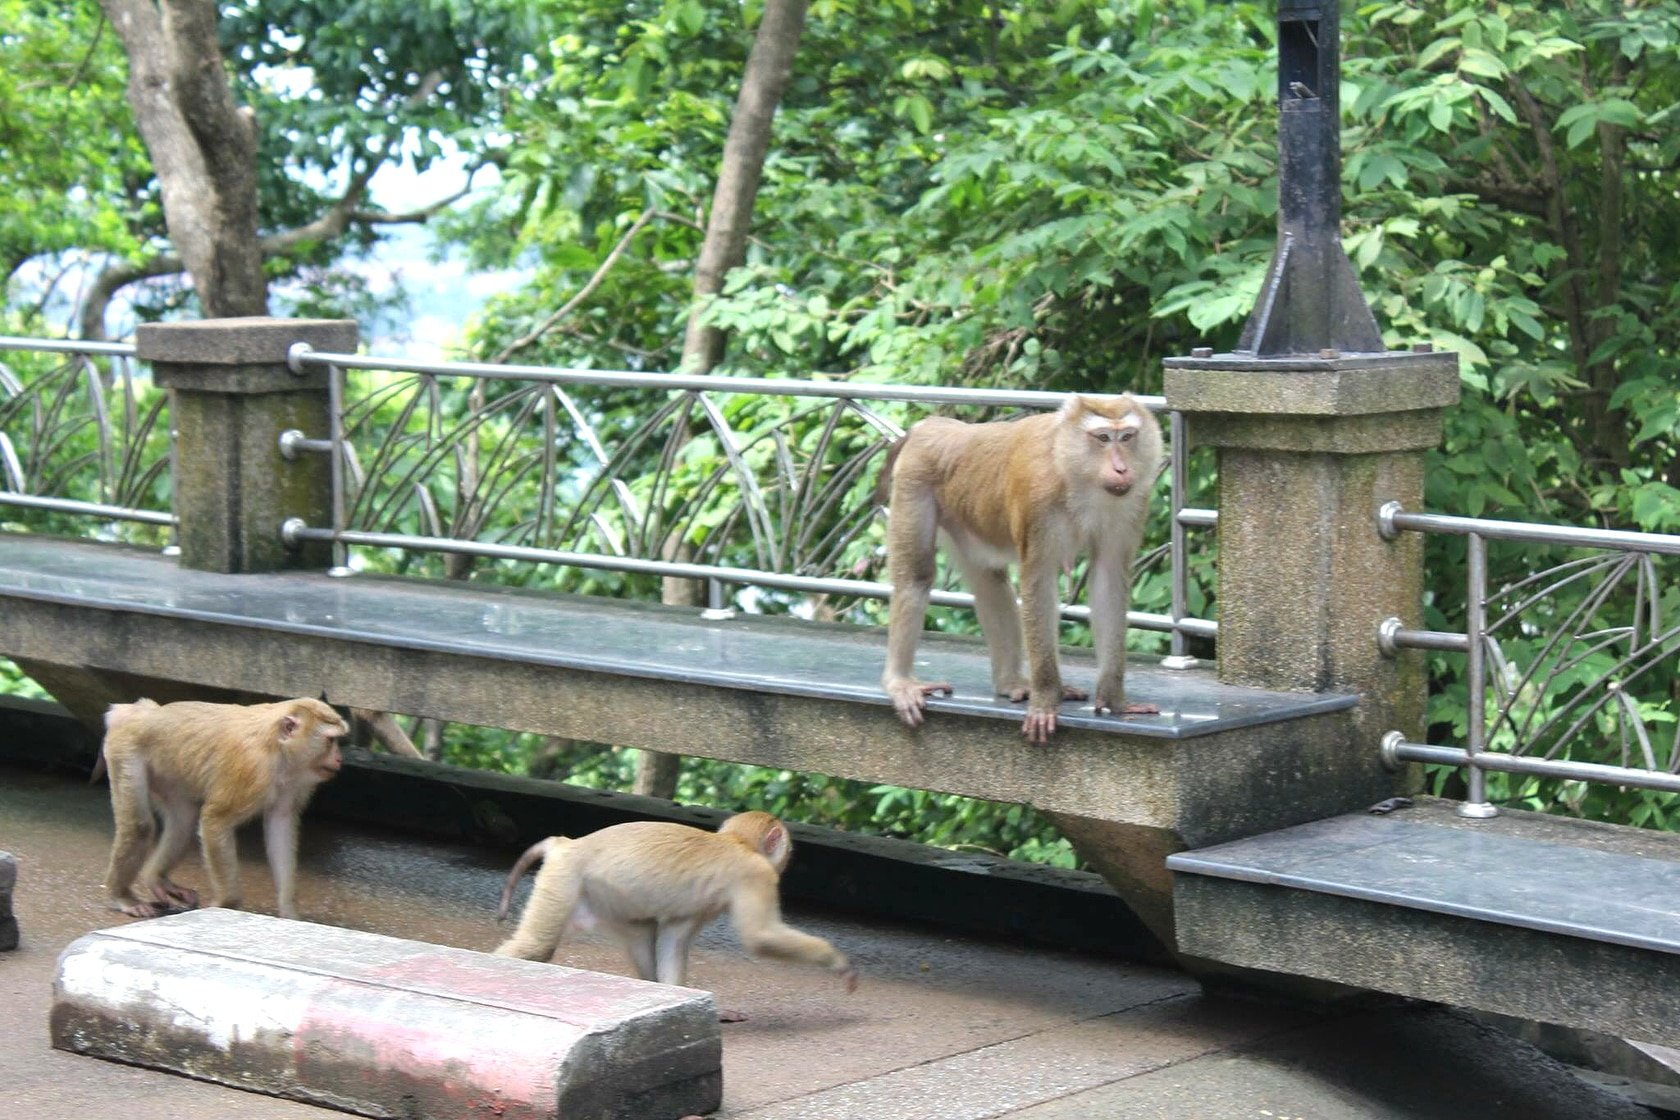 900,000 baht to move 'some' monkeys | The Thaiger